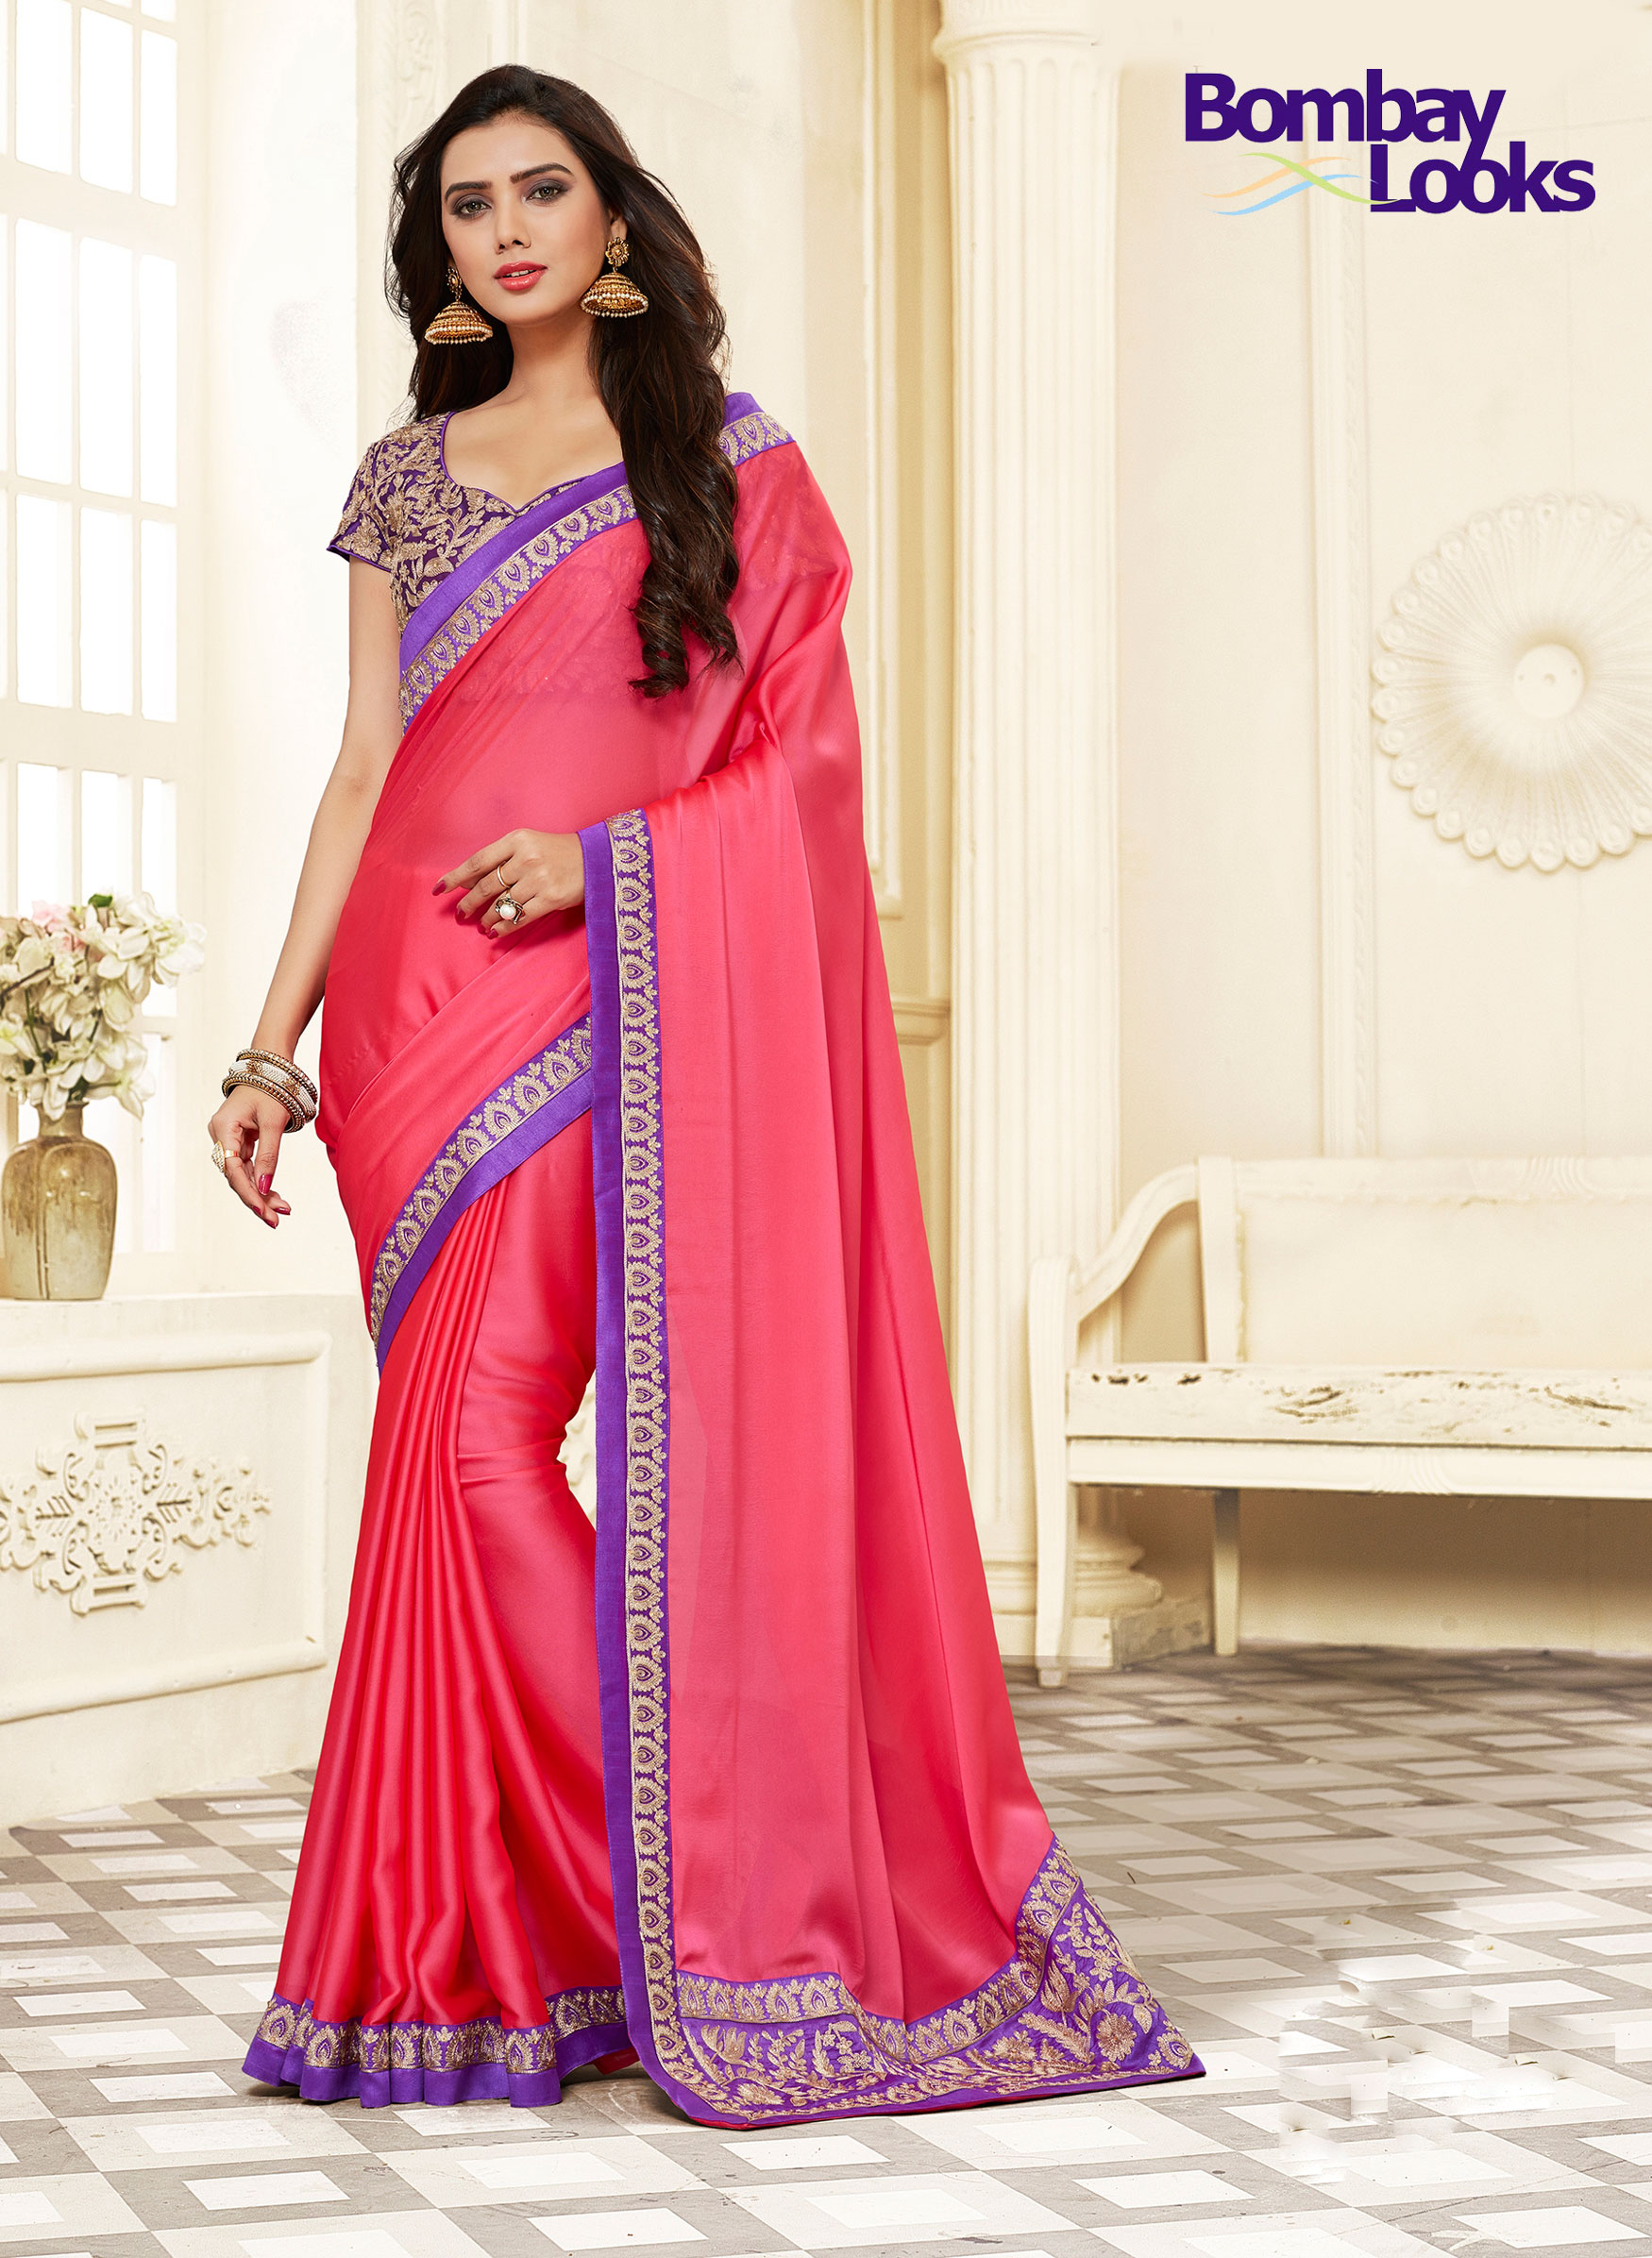 Elegant Coral and Purple saree with stylish blouse